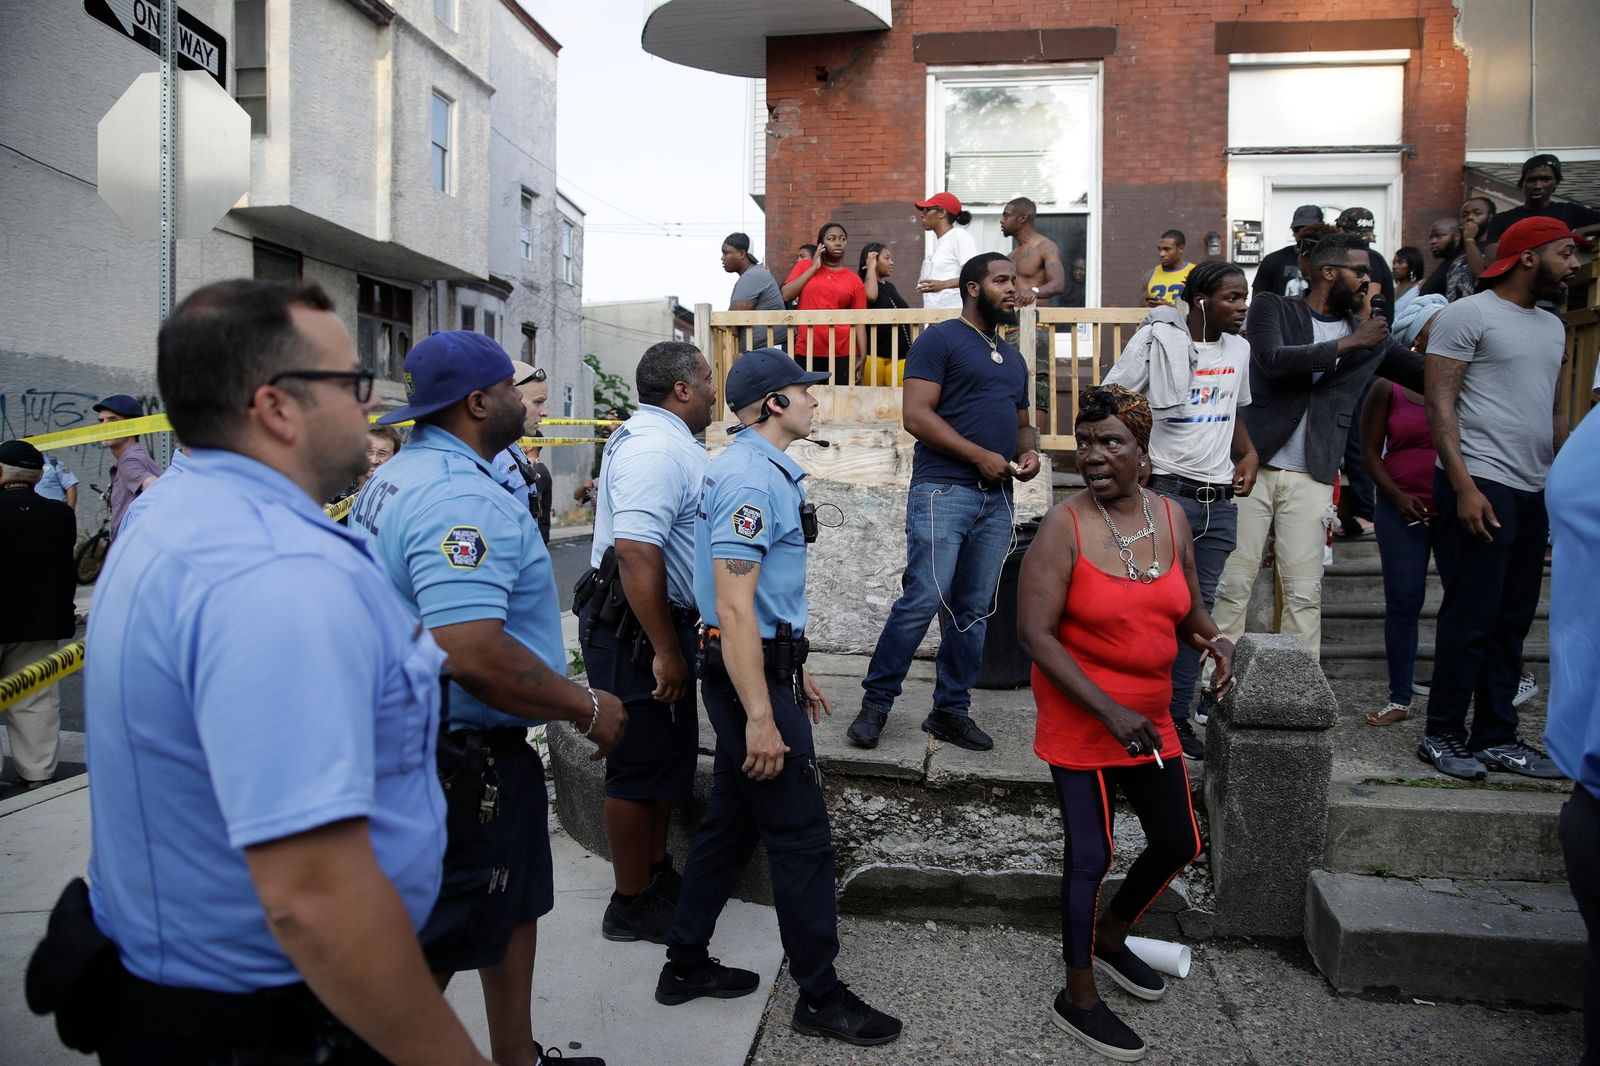 Police urge people to leave the area as they investigate an active shooting situation, Wednesday, Aug. 14, 2019, in the Nicetown neighborhood of Philadelphia. (AP Photo/Matt Rourke)